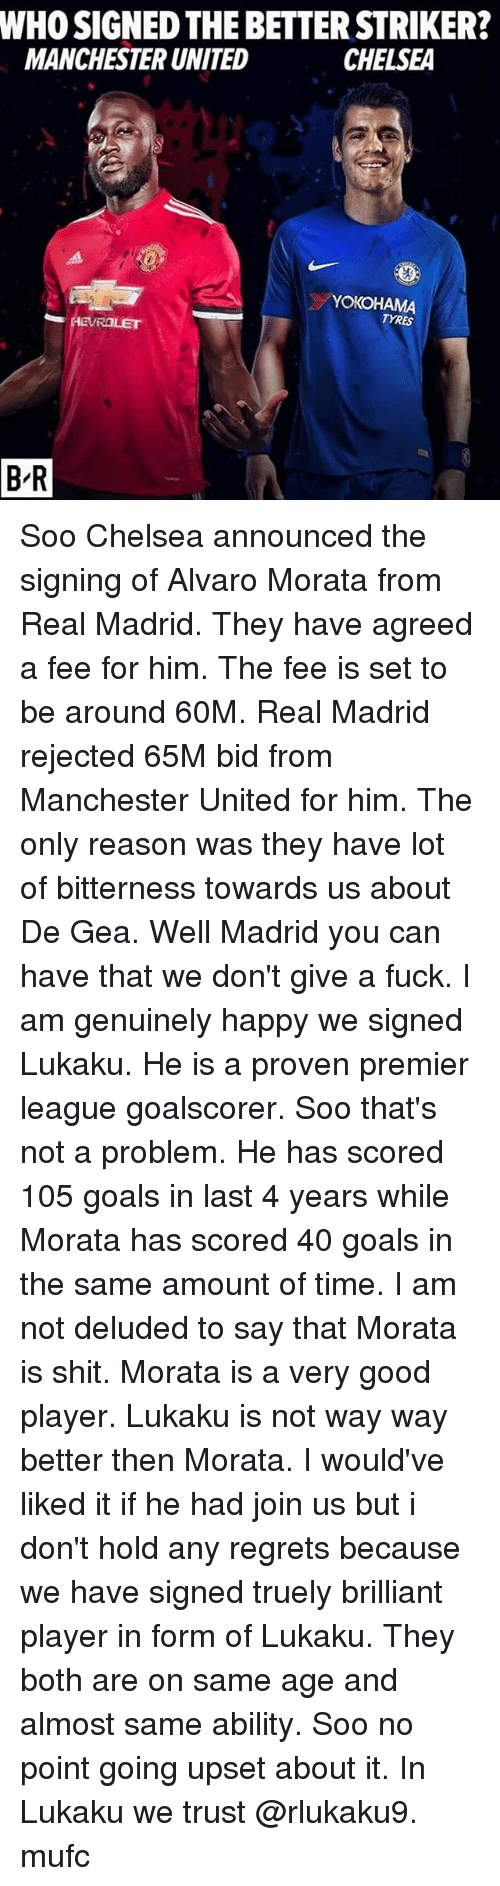 Chelsea, Goals, and Memes: WHO SIGNED THE BETTER STRIKER?  MANCHESTER UNITED  CHELSEA  YOKOHAMA  TYRES  B-R Soo Chelsea announced the signing of Alvaro Morata from Real Madrid. They have agreed a fee for him. The fee is set to be around 60M. Real Madrid rejected 65M bid from Manchester United for him. The only reason was they have lot of bitterness towards us about De Gea. Well Madrid you can have that we don't give a fuck. I am genuinely happy we signed Lukaku. He is a proven premier league goalscorer. Soo that's not a problem. He has scored 105 goals in last 4 years while Morata has scored 40 goals in the same amount of time. I am not deluded to say that Morata is shit. Morata is a very good player. Lukaku is not way way better then Morata. I would've liked it if he had join us but i don't hold any regrets because we have signed truely brilliant player in form of Lukaku. They both are on same age and almost same ability. Soo no point going upset about it. In Lukaku we trust @rlukaku9. mufc